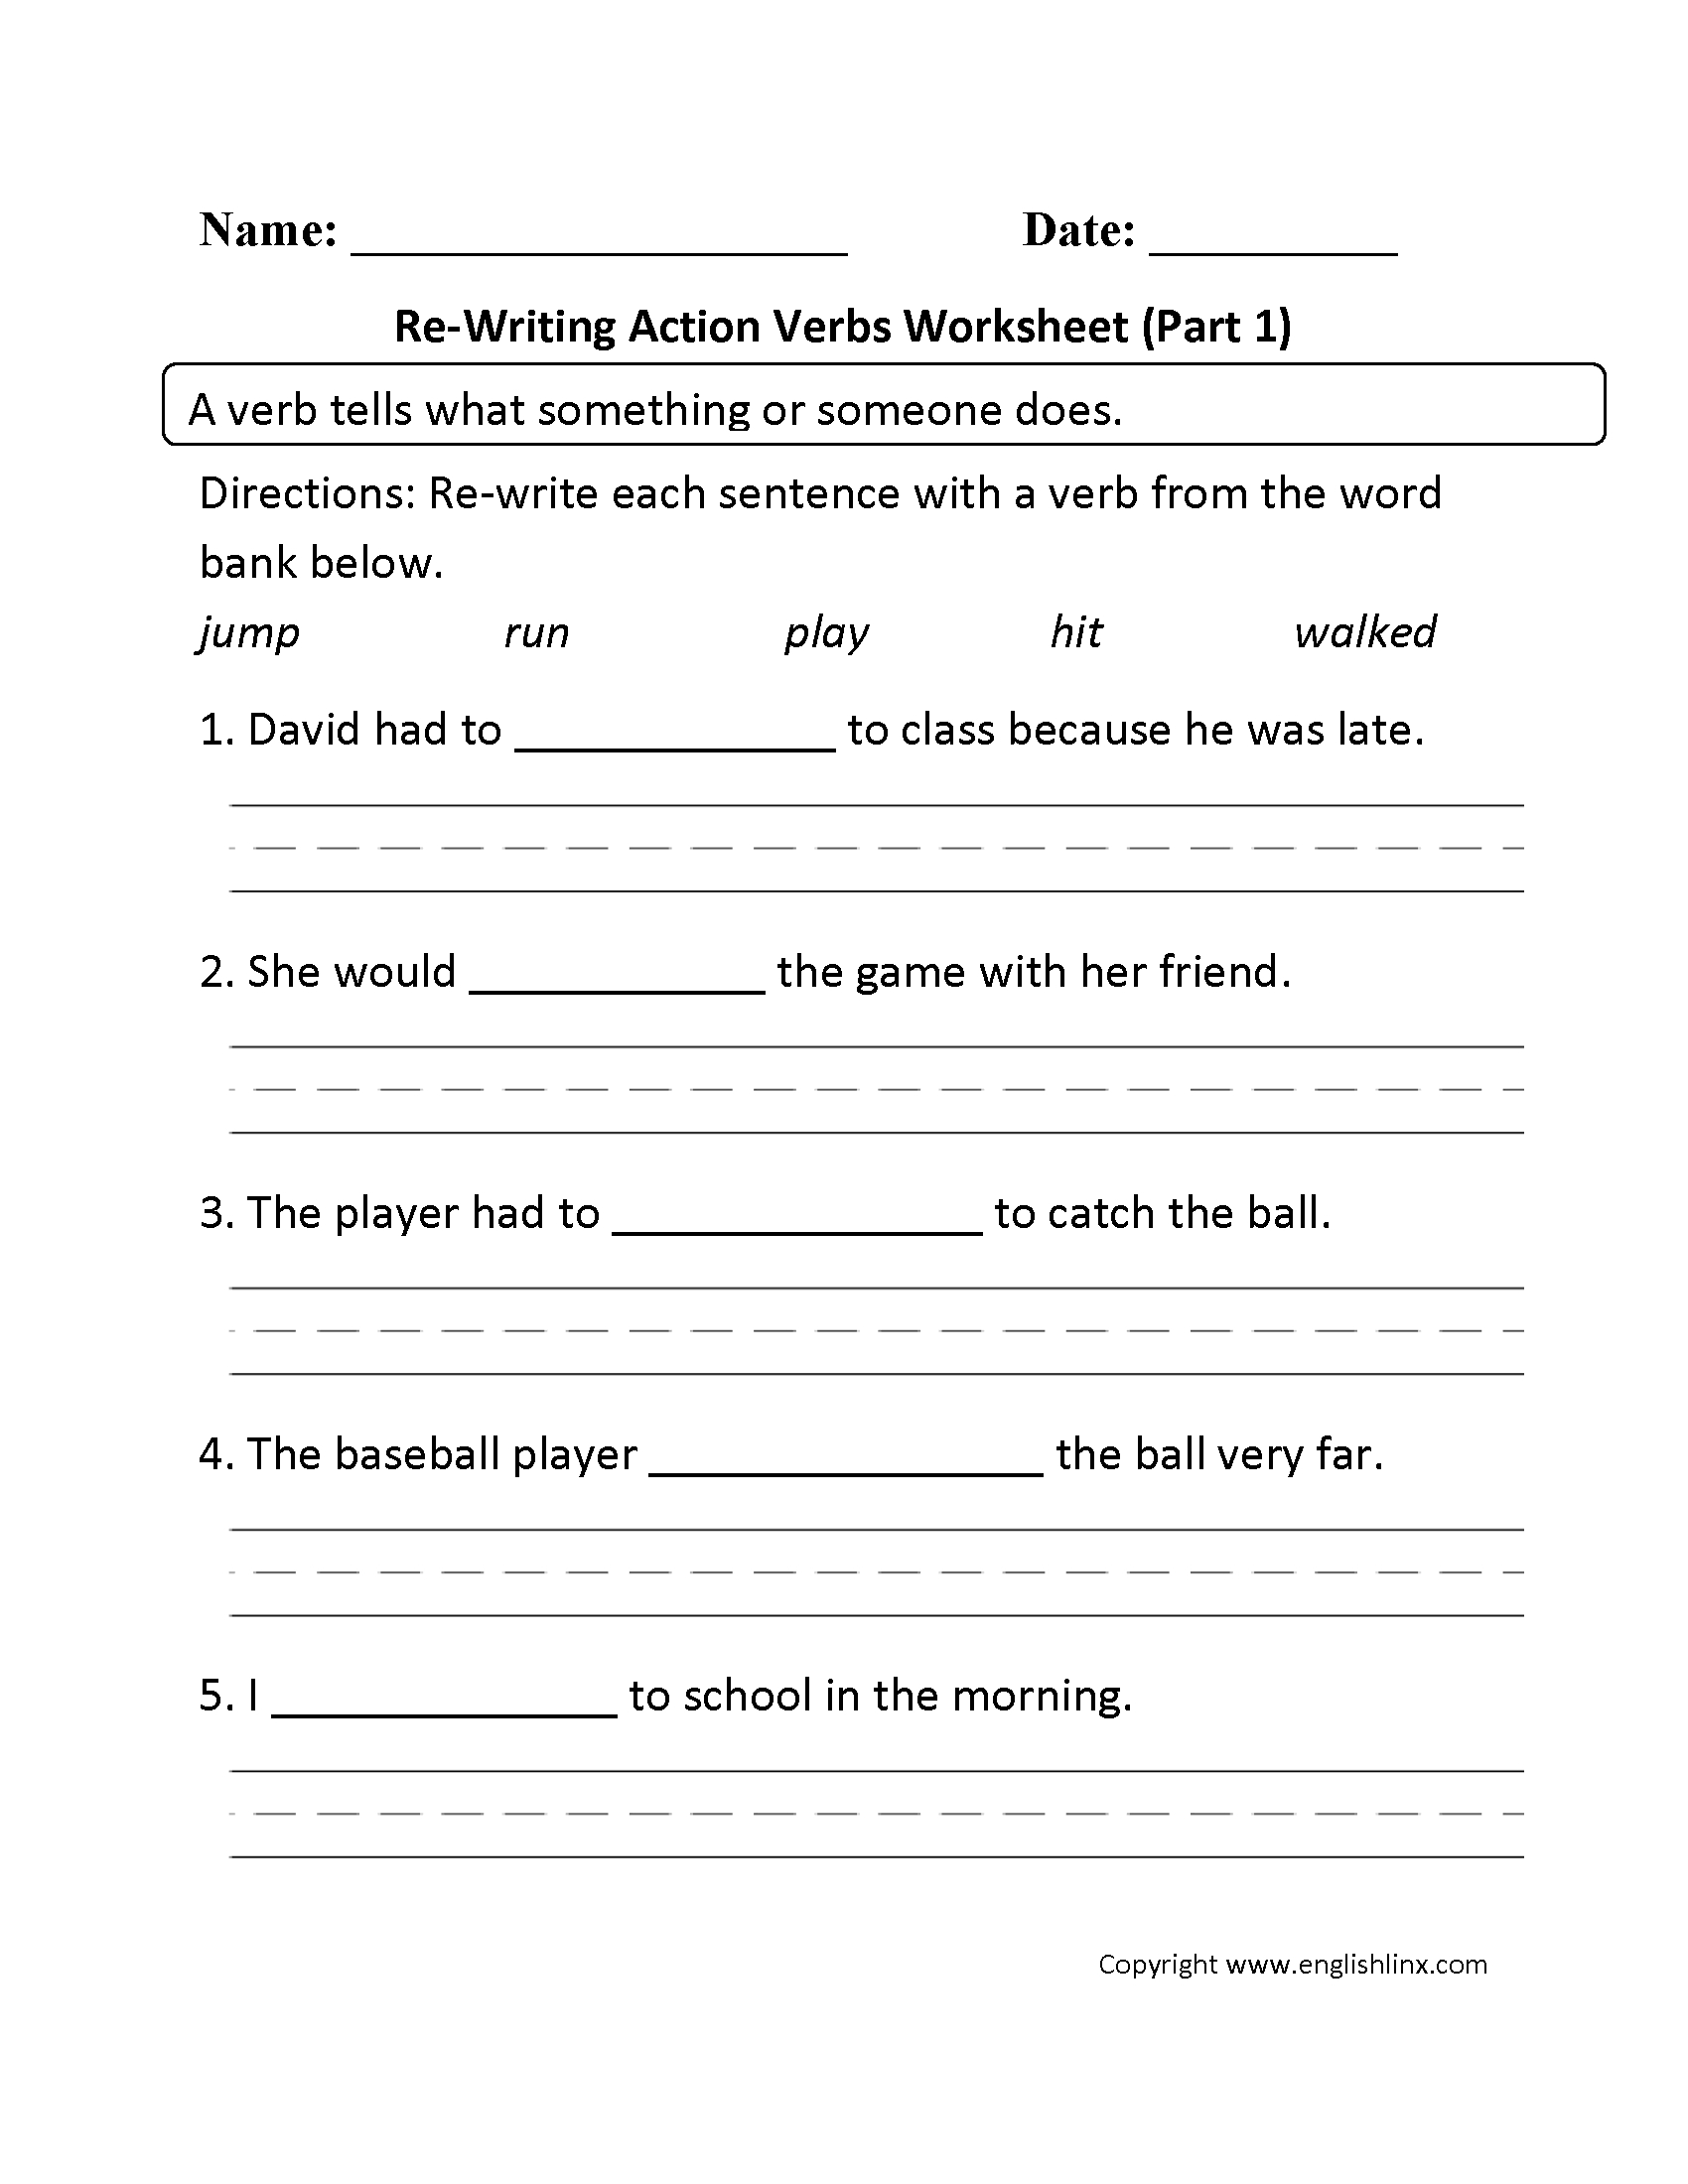 Verbs Worksheets | Action Verbs Worksheets - Free Printable Verb Worksheets